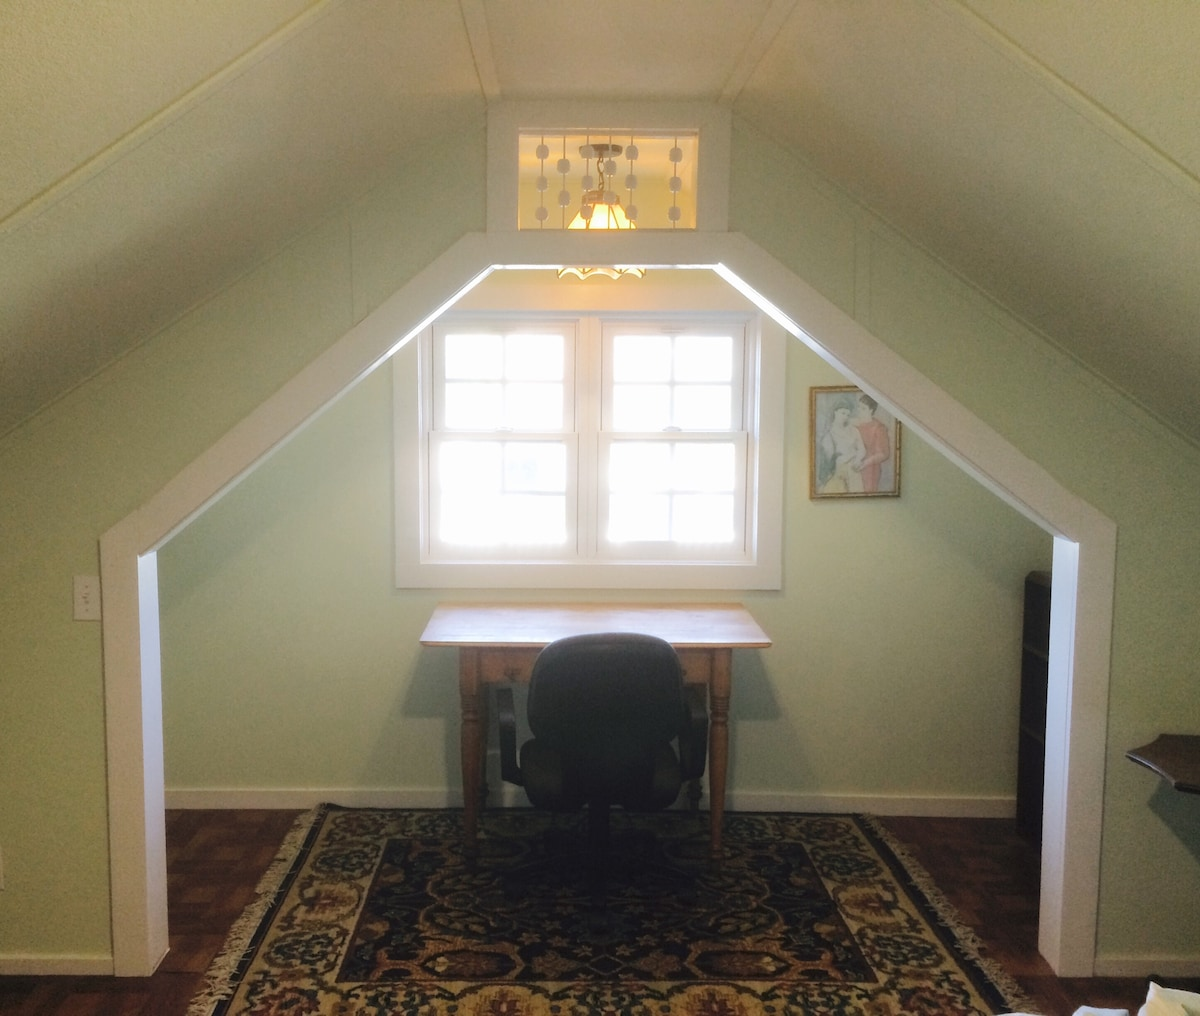 Your bedroom comes with a quiet place to study or just to gaze out the window to enjoy the view of craftsman style homes with a backdrop of the coast range mountains. 30 day minimum stay for this room.